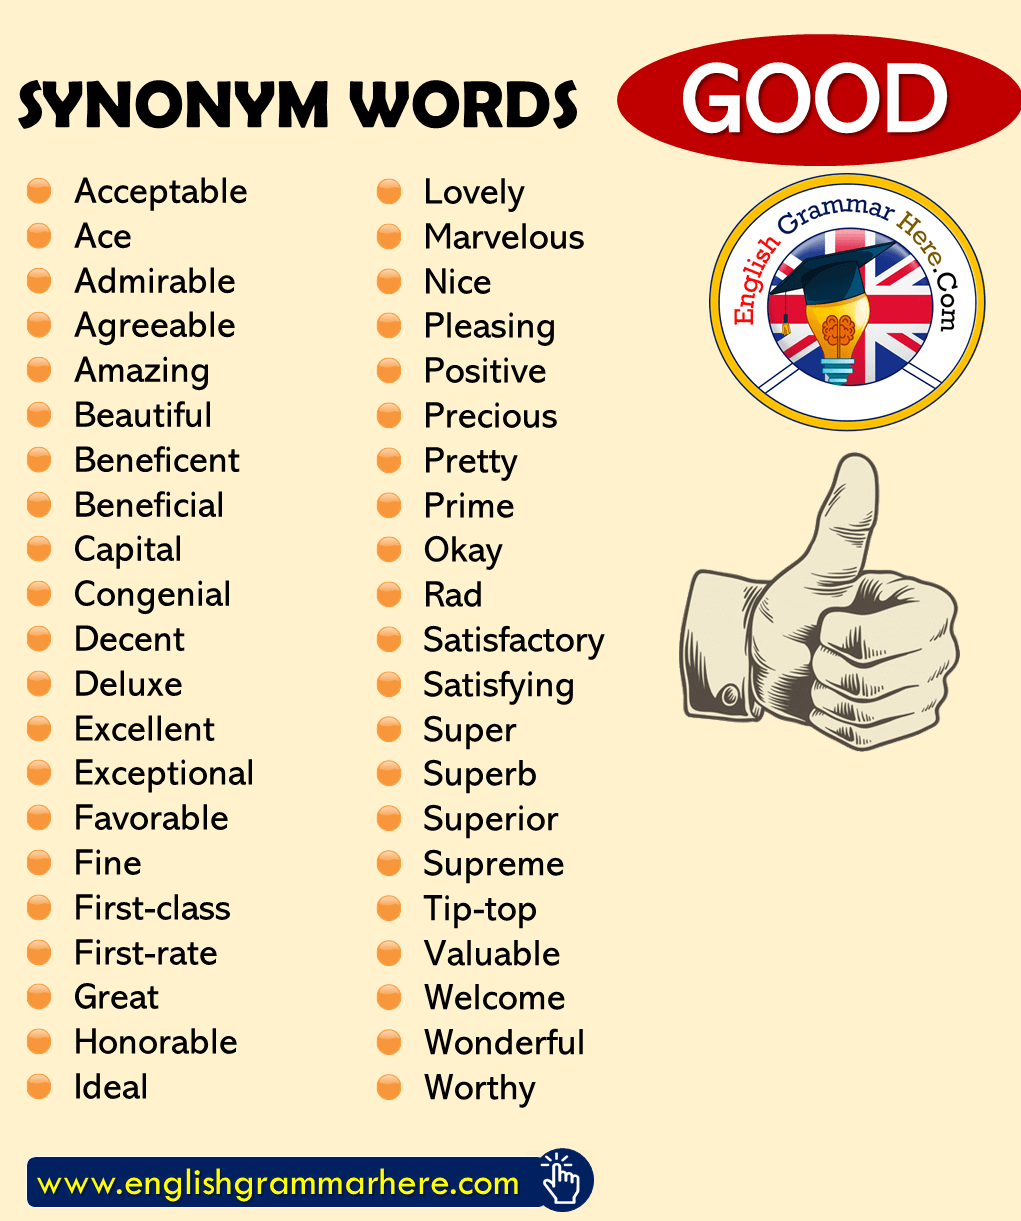 English Synonym Words with GOOD, English Vocabulary